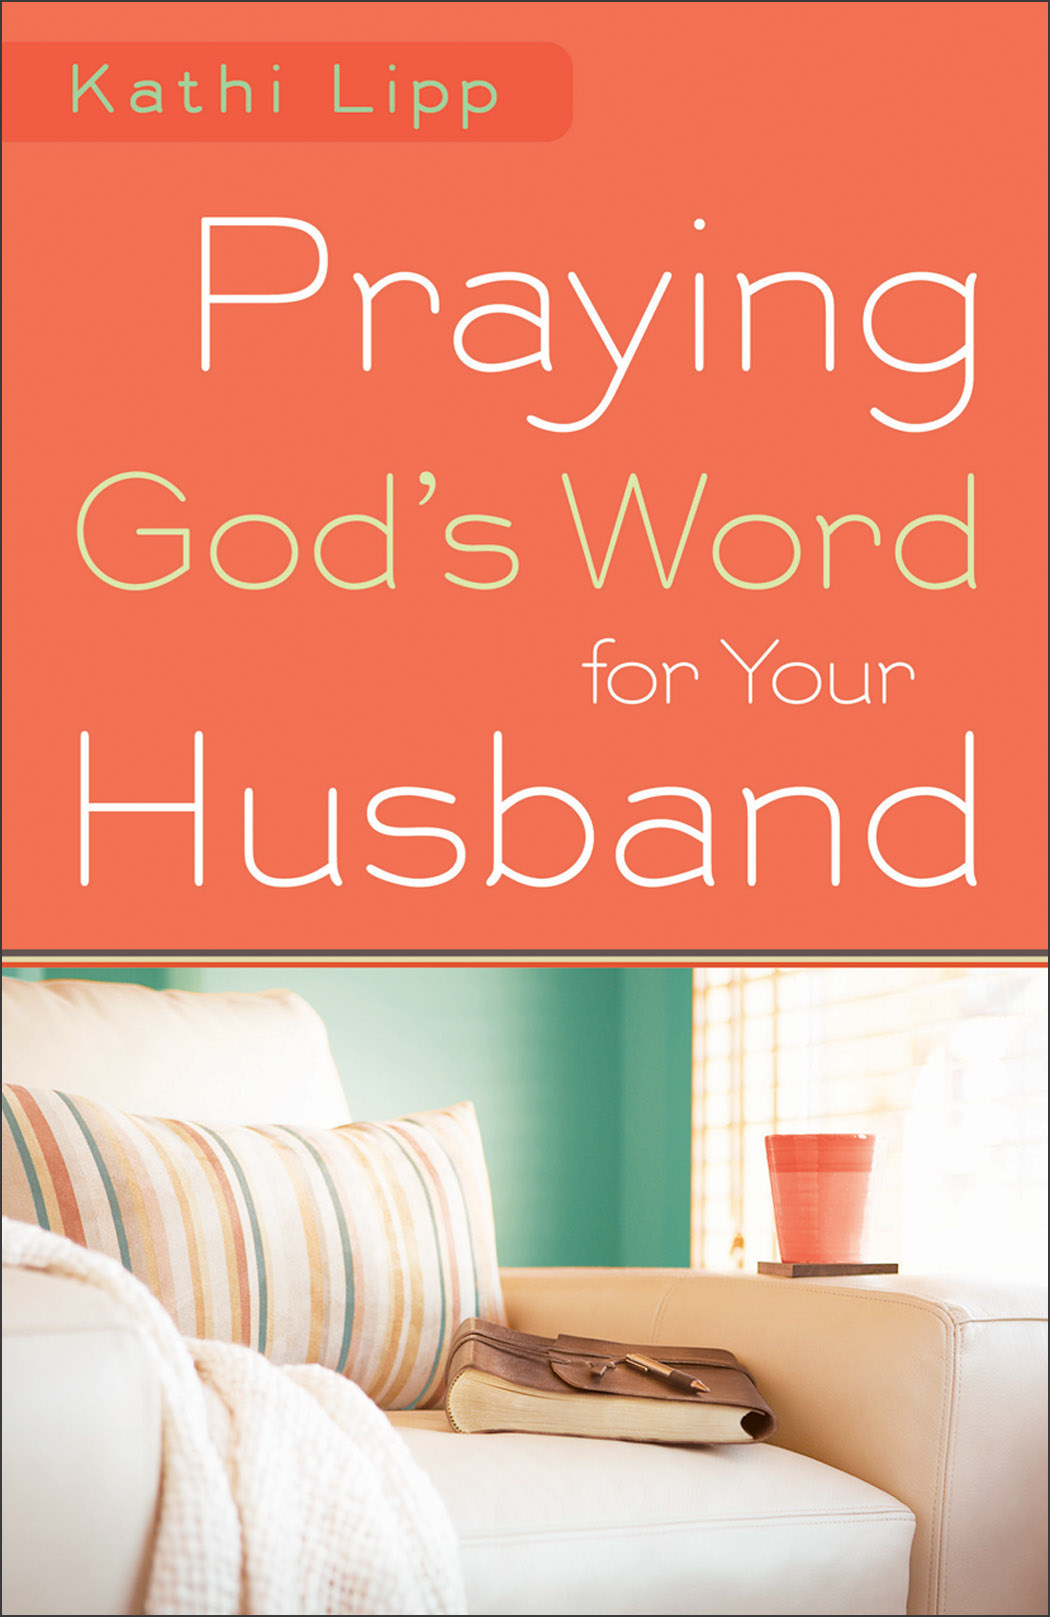 Praying God's Word for Your Husband By: Kathi Lipp